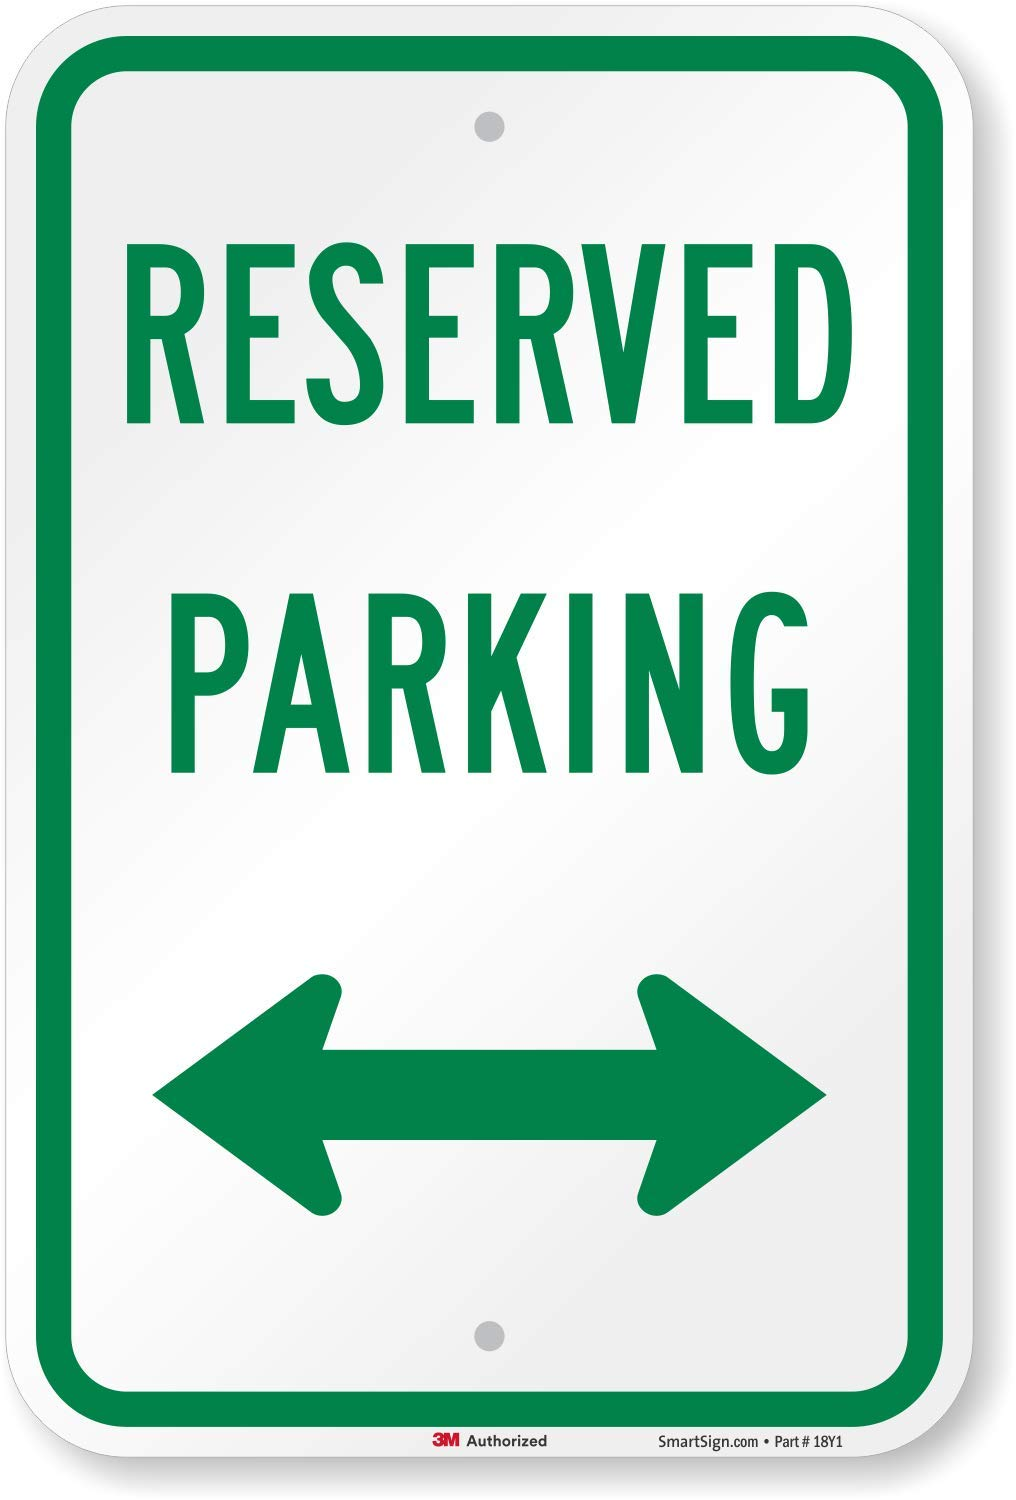 LegendReserved Parking with Arrow SmartSign 3M Engineer Grade Reflective Sign Green on White 18 High X 12 Wide